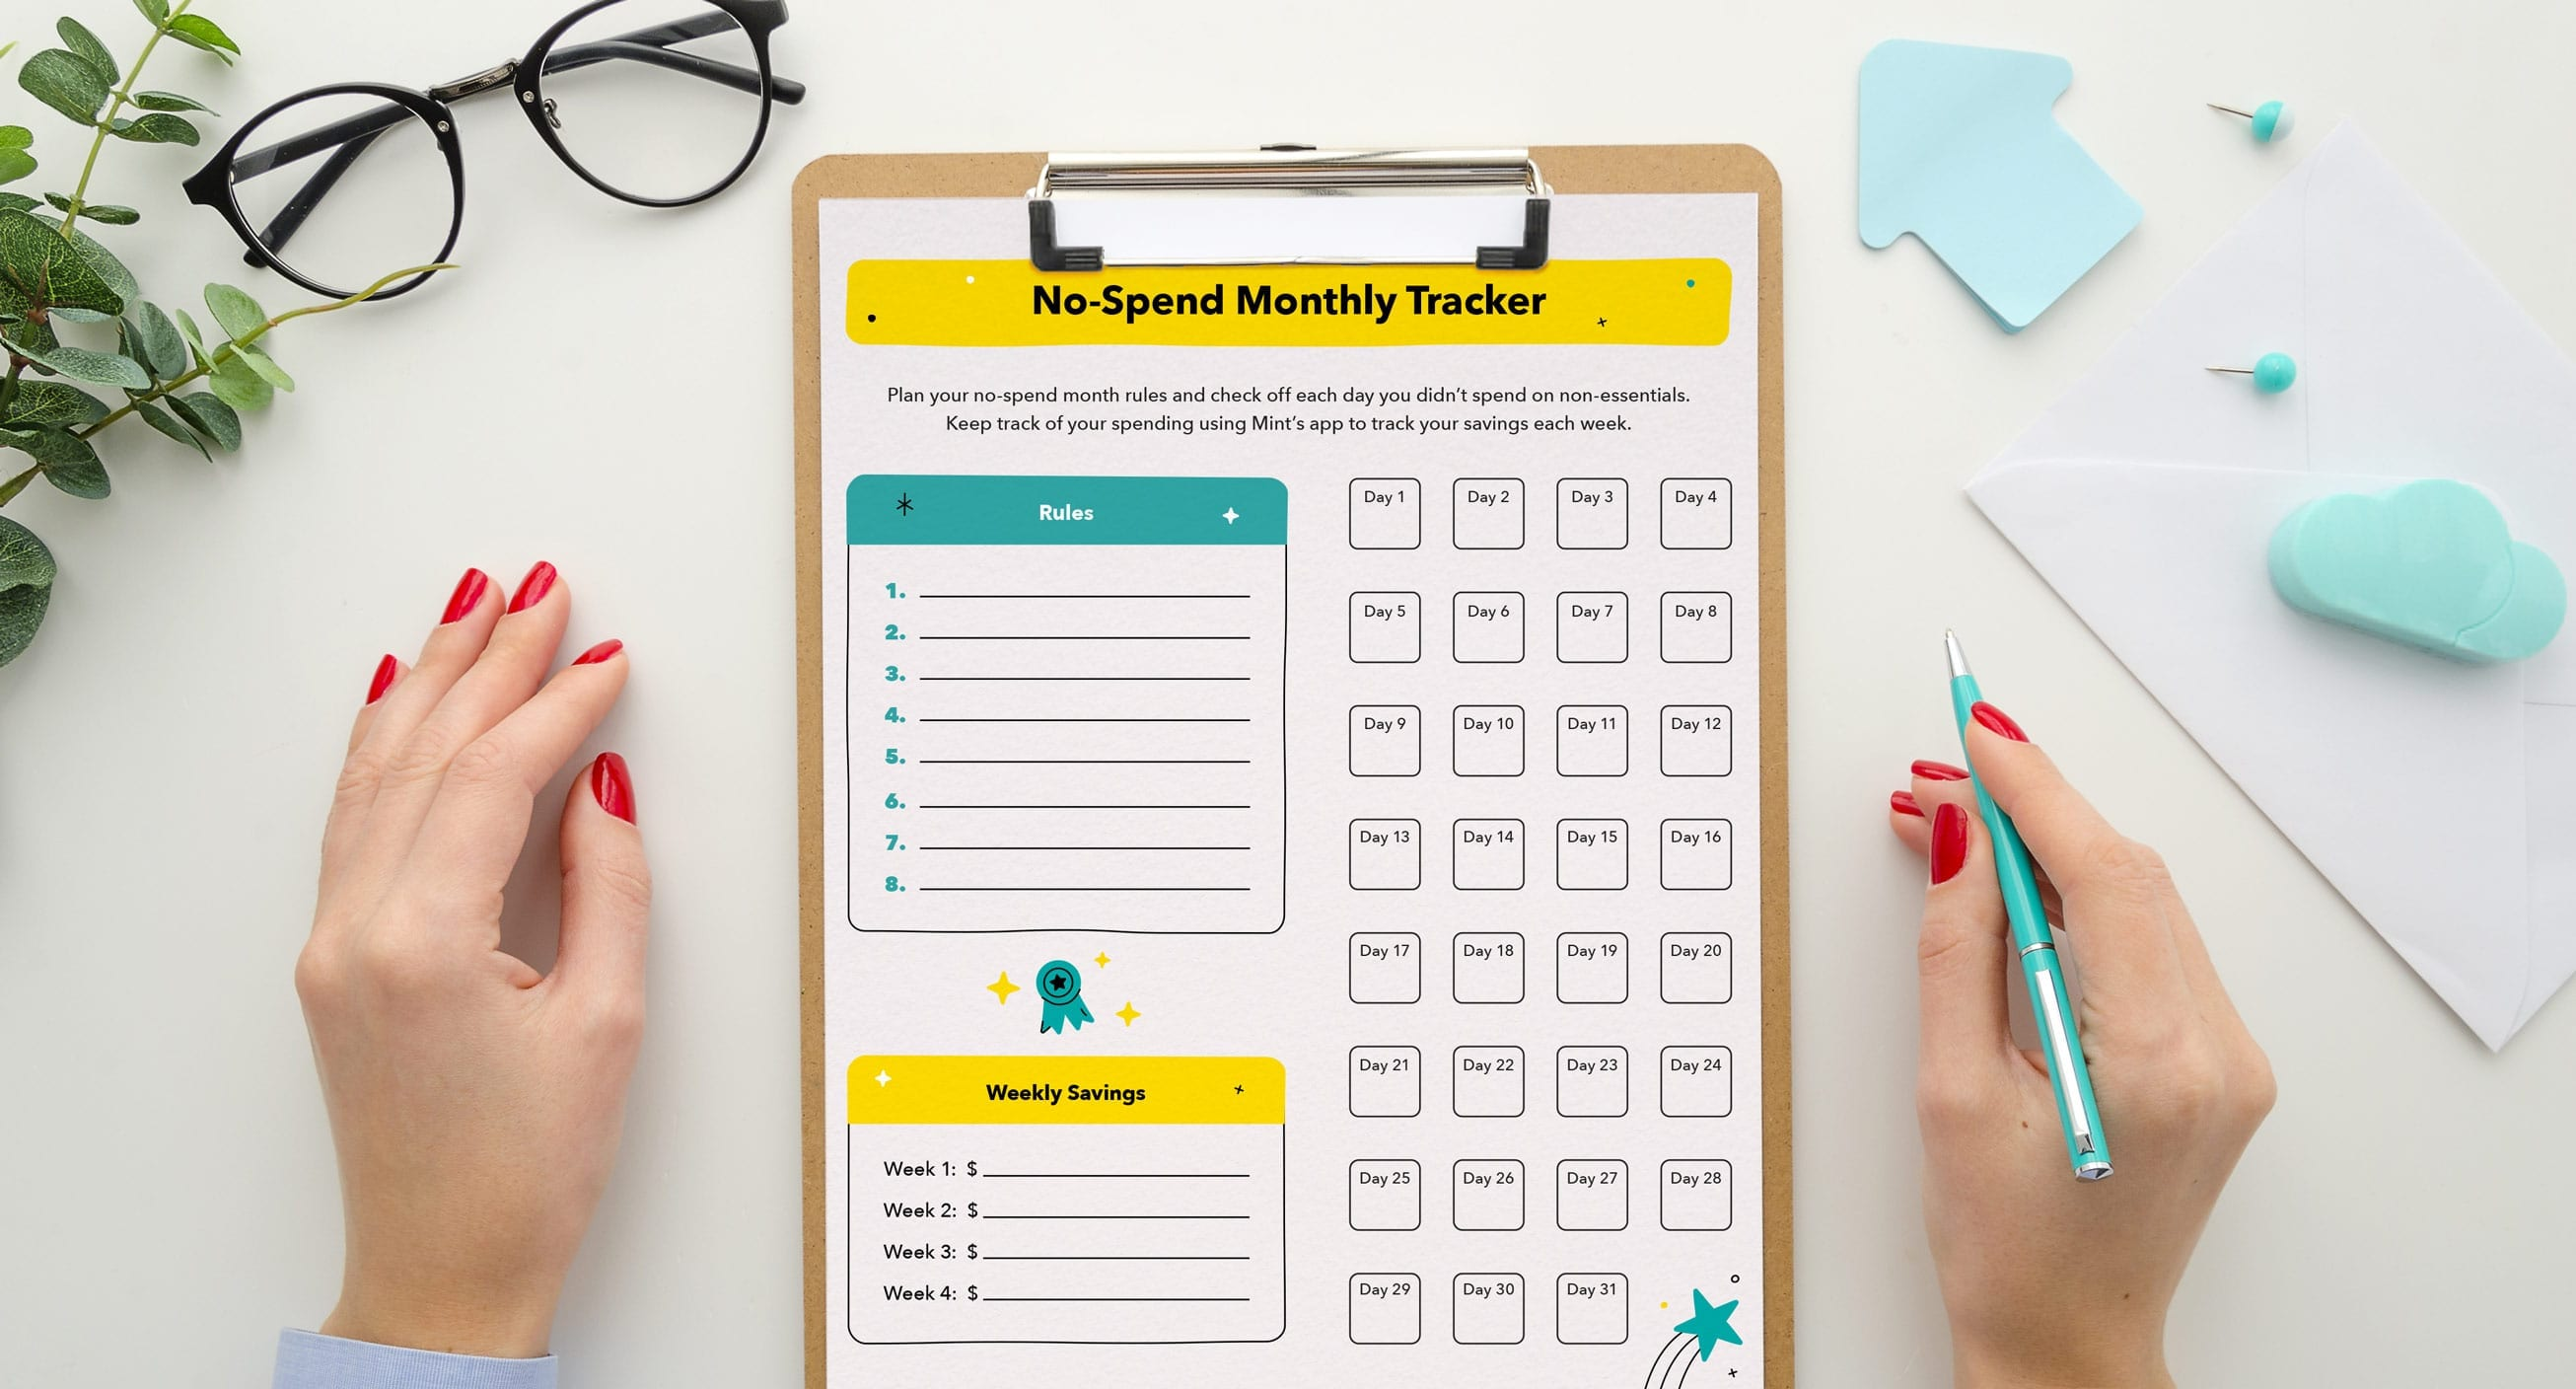 no-spend-monthly-tracker